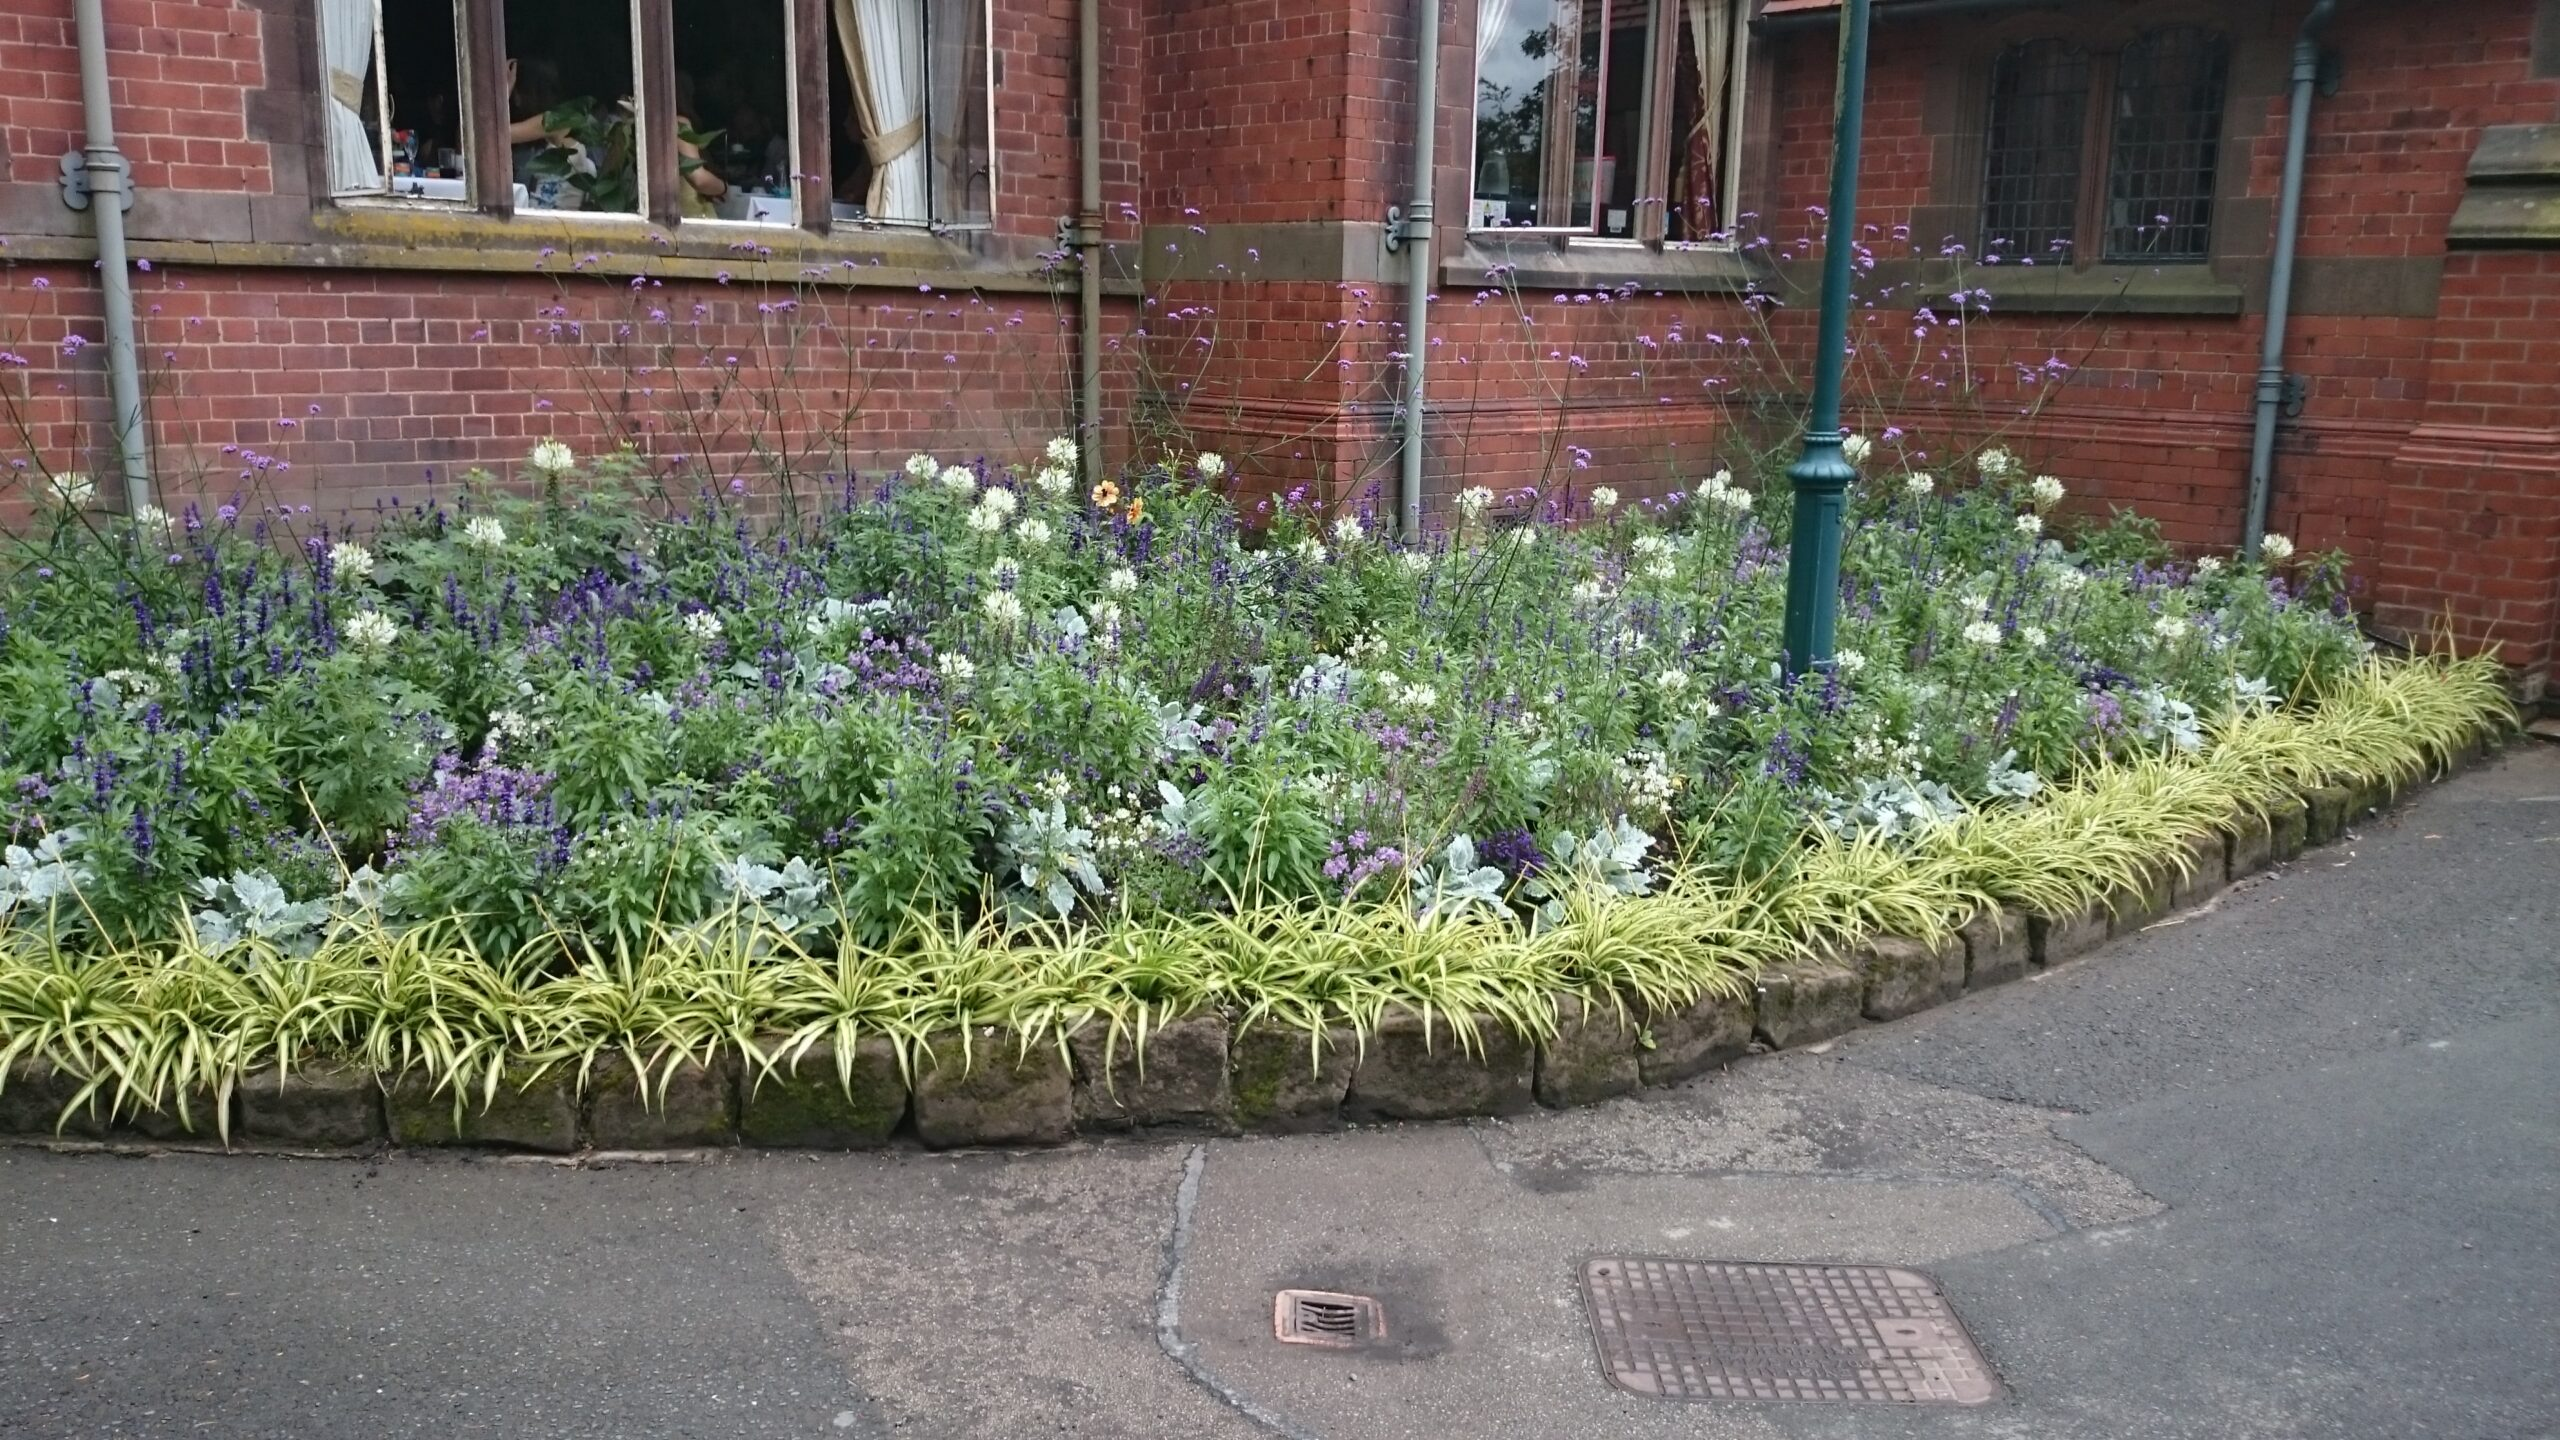 Front of building planted with purple and white flowers and grasses